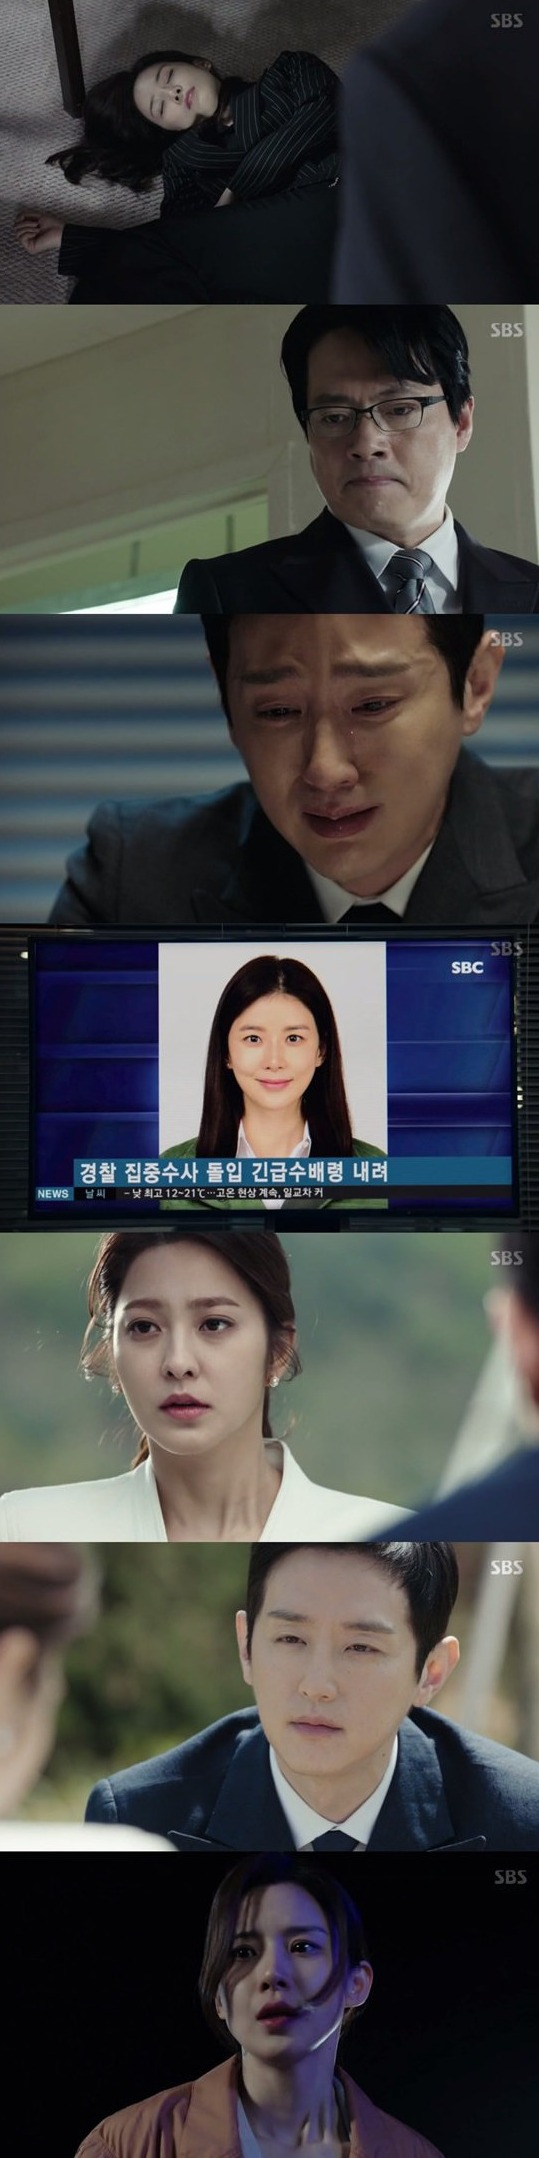 [Spoiler] Added episode 10 captures for the Korean drama 'Whisper'